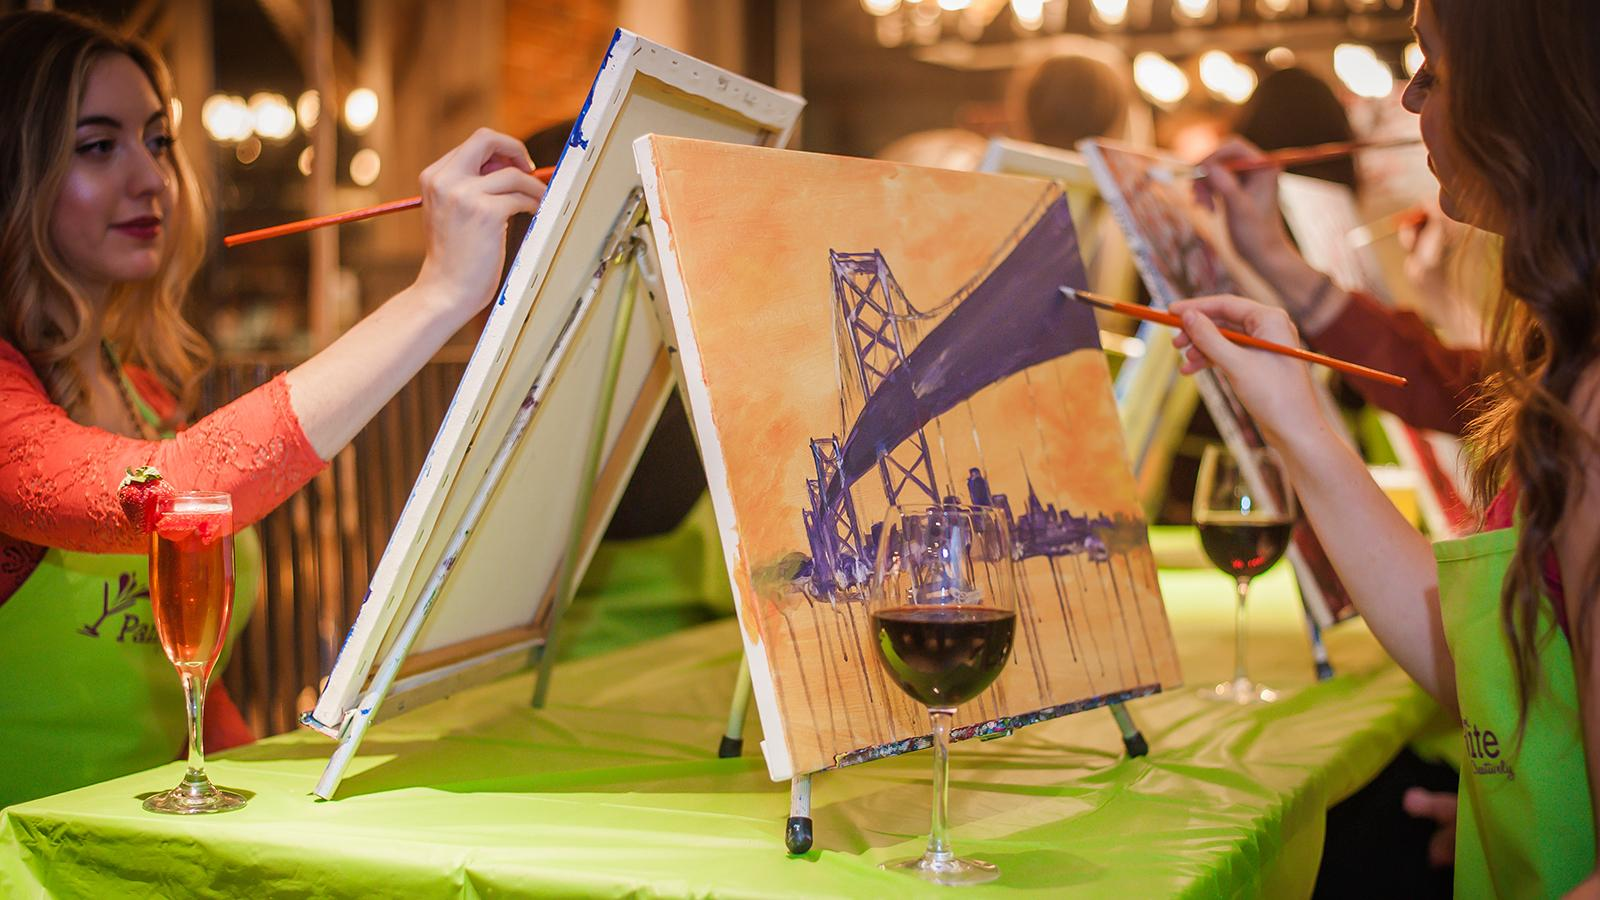 Painting, Sipping and Selling Wine